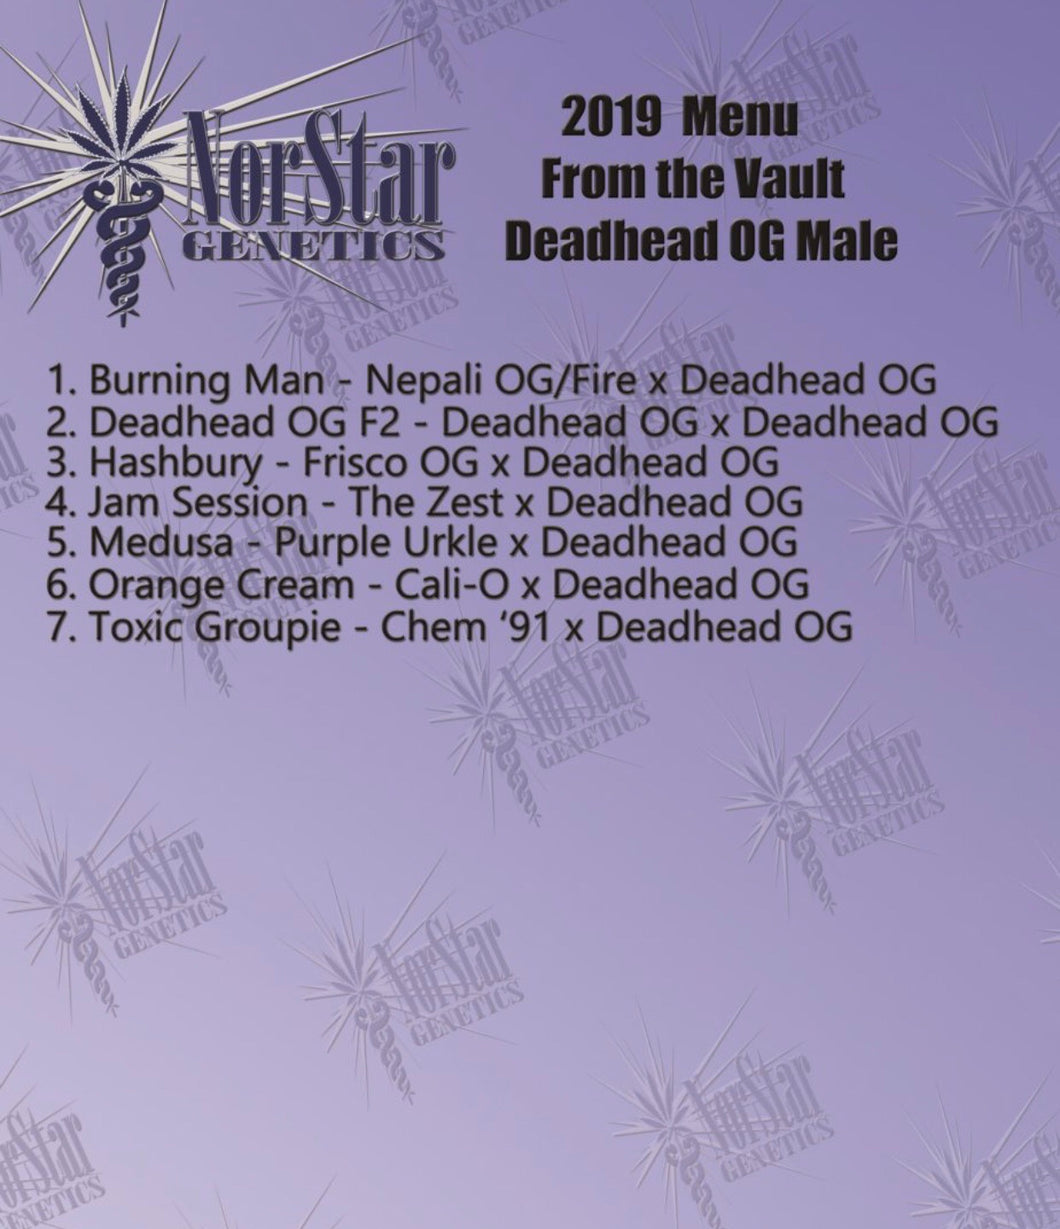 From the Vault Deadhead OG male crosses